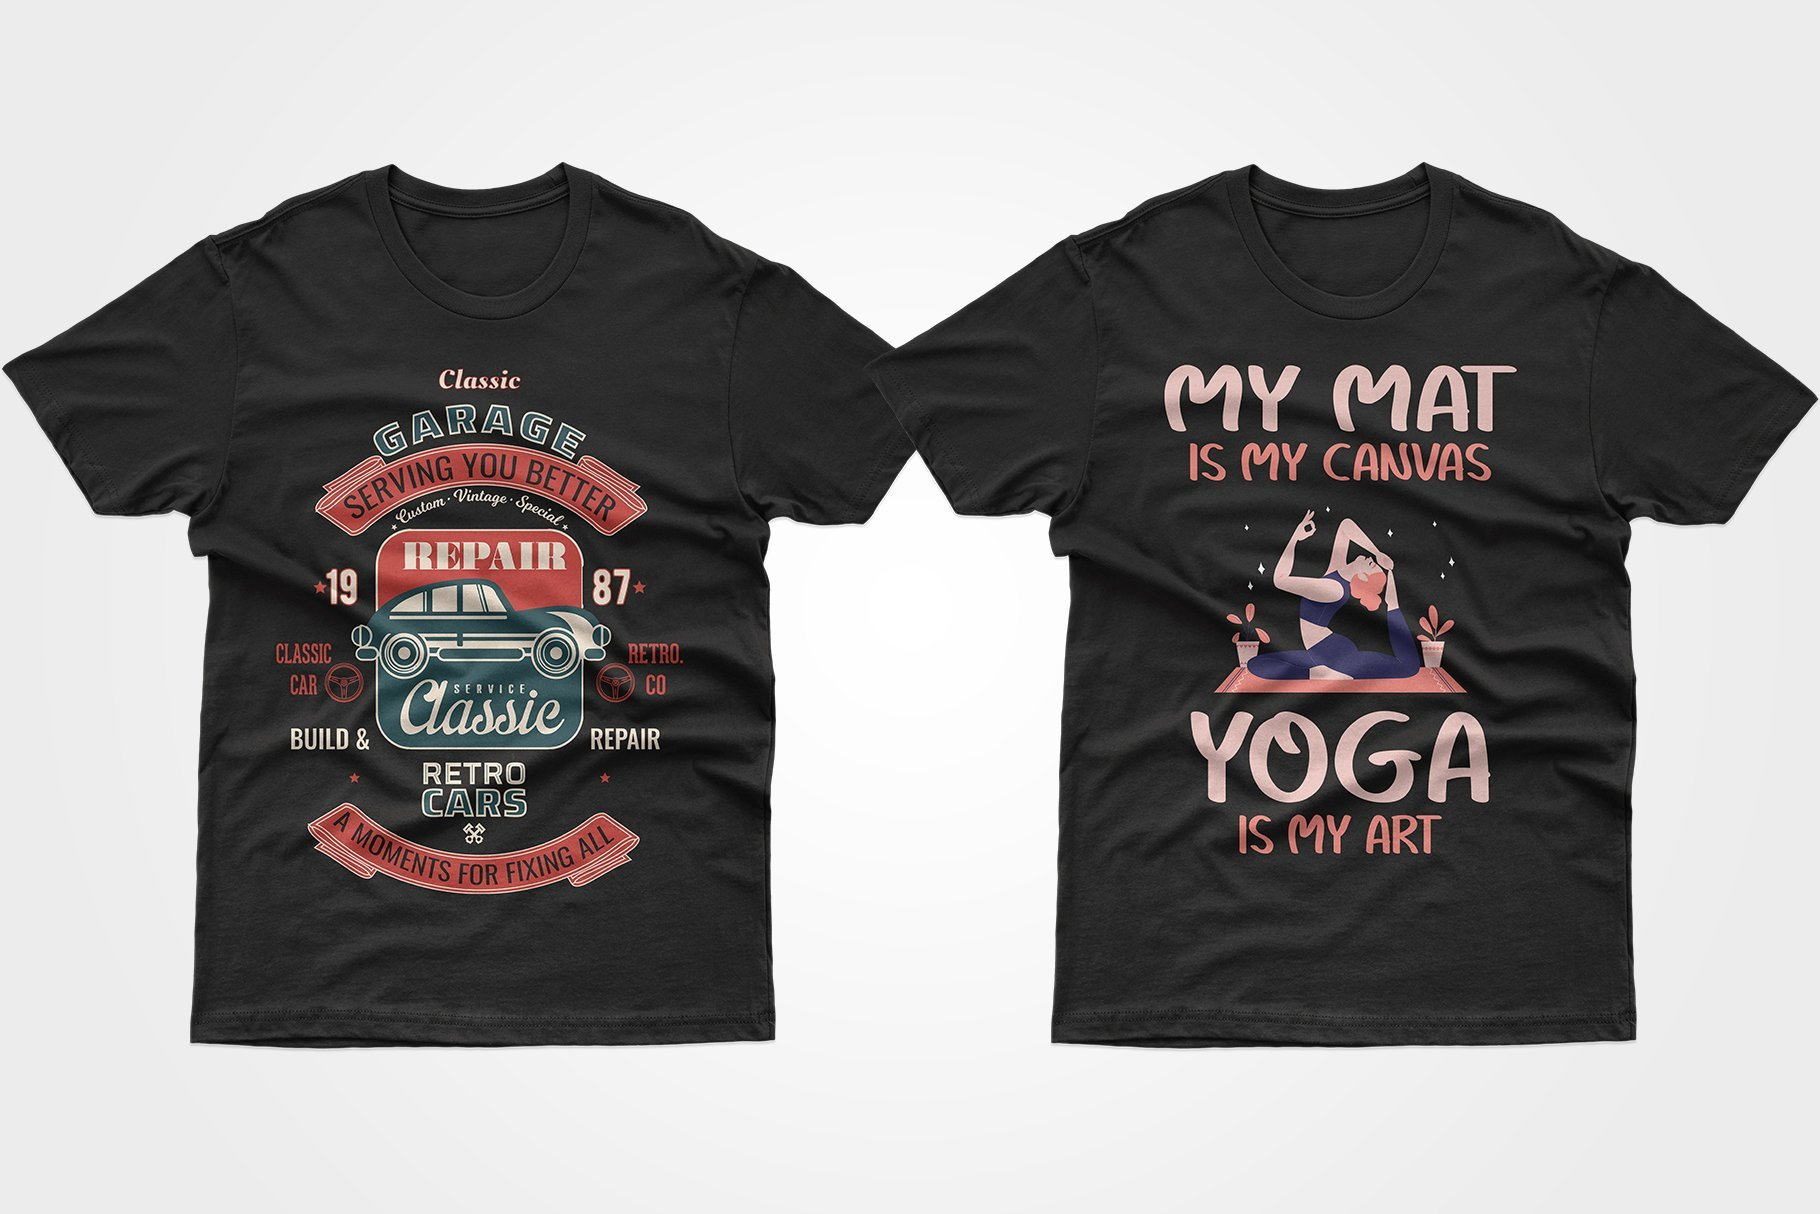 Two black T-shirts - one with a yoga ad and one with a car recycling service.